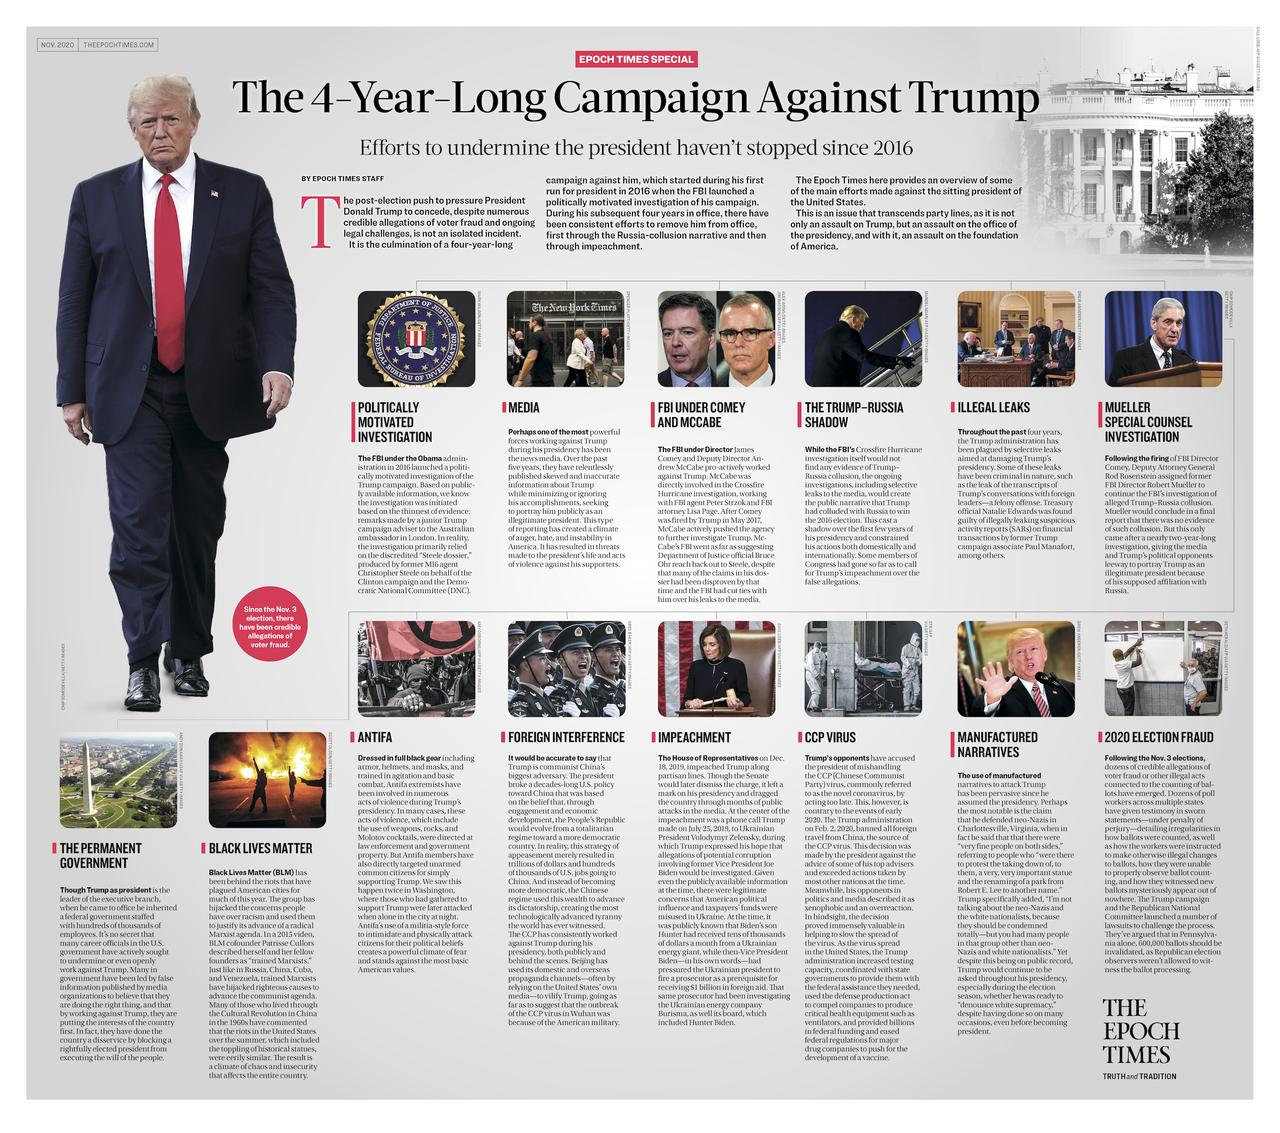 Infographic: The 4-Year-Long Campaign Against Trump